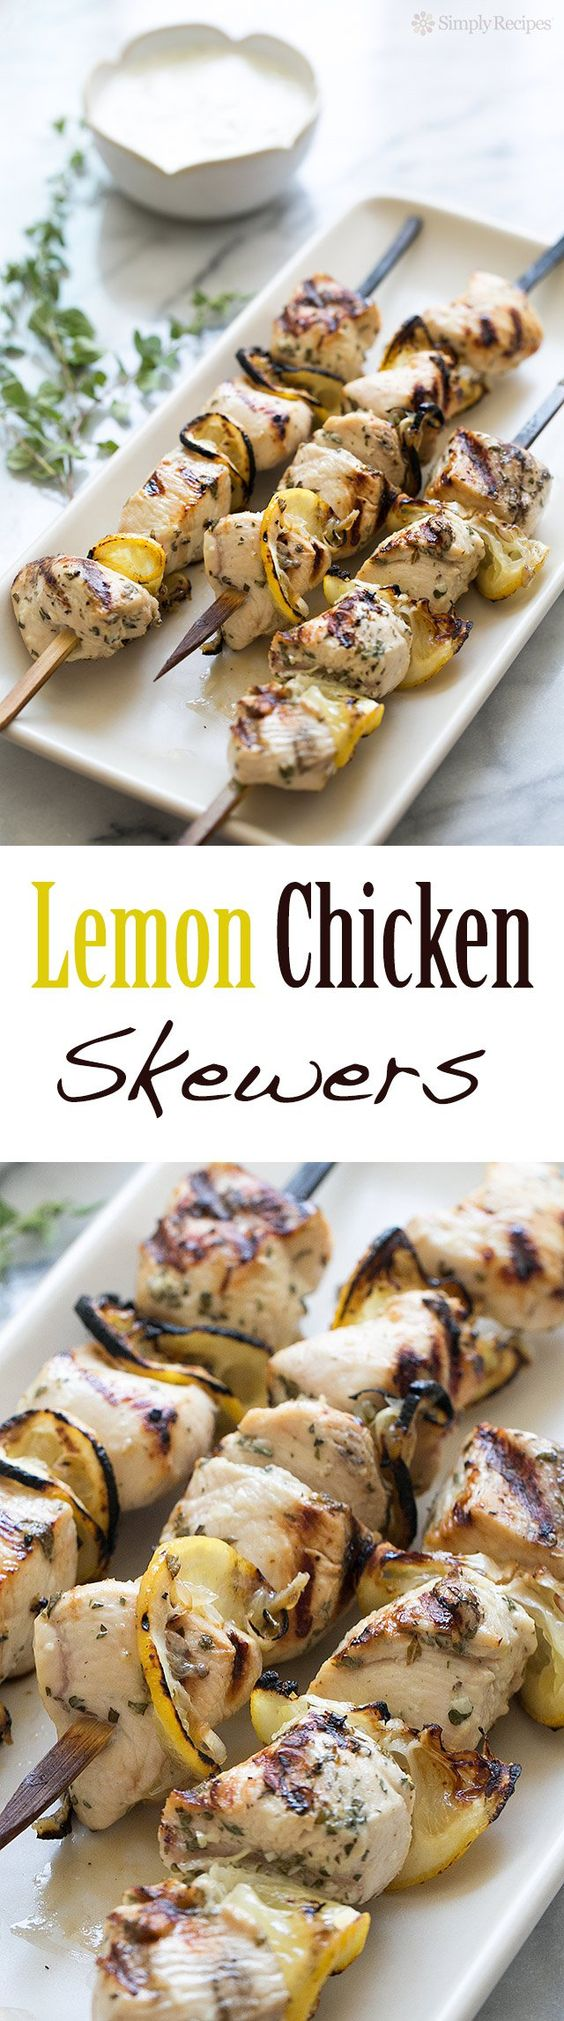 Chicken Skewers with Tzatziki Sauce | Recipe | Greek Lemon Chicken ...